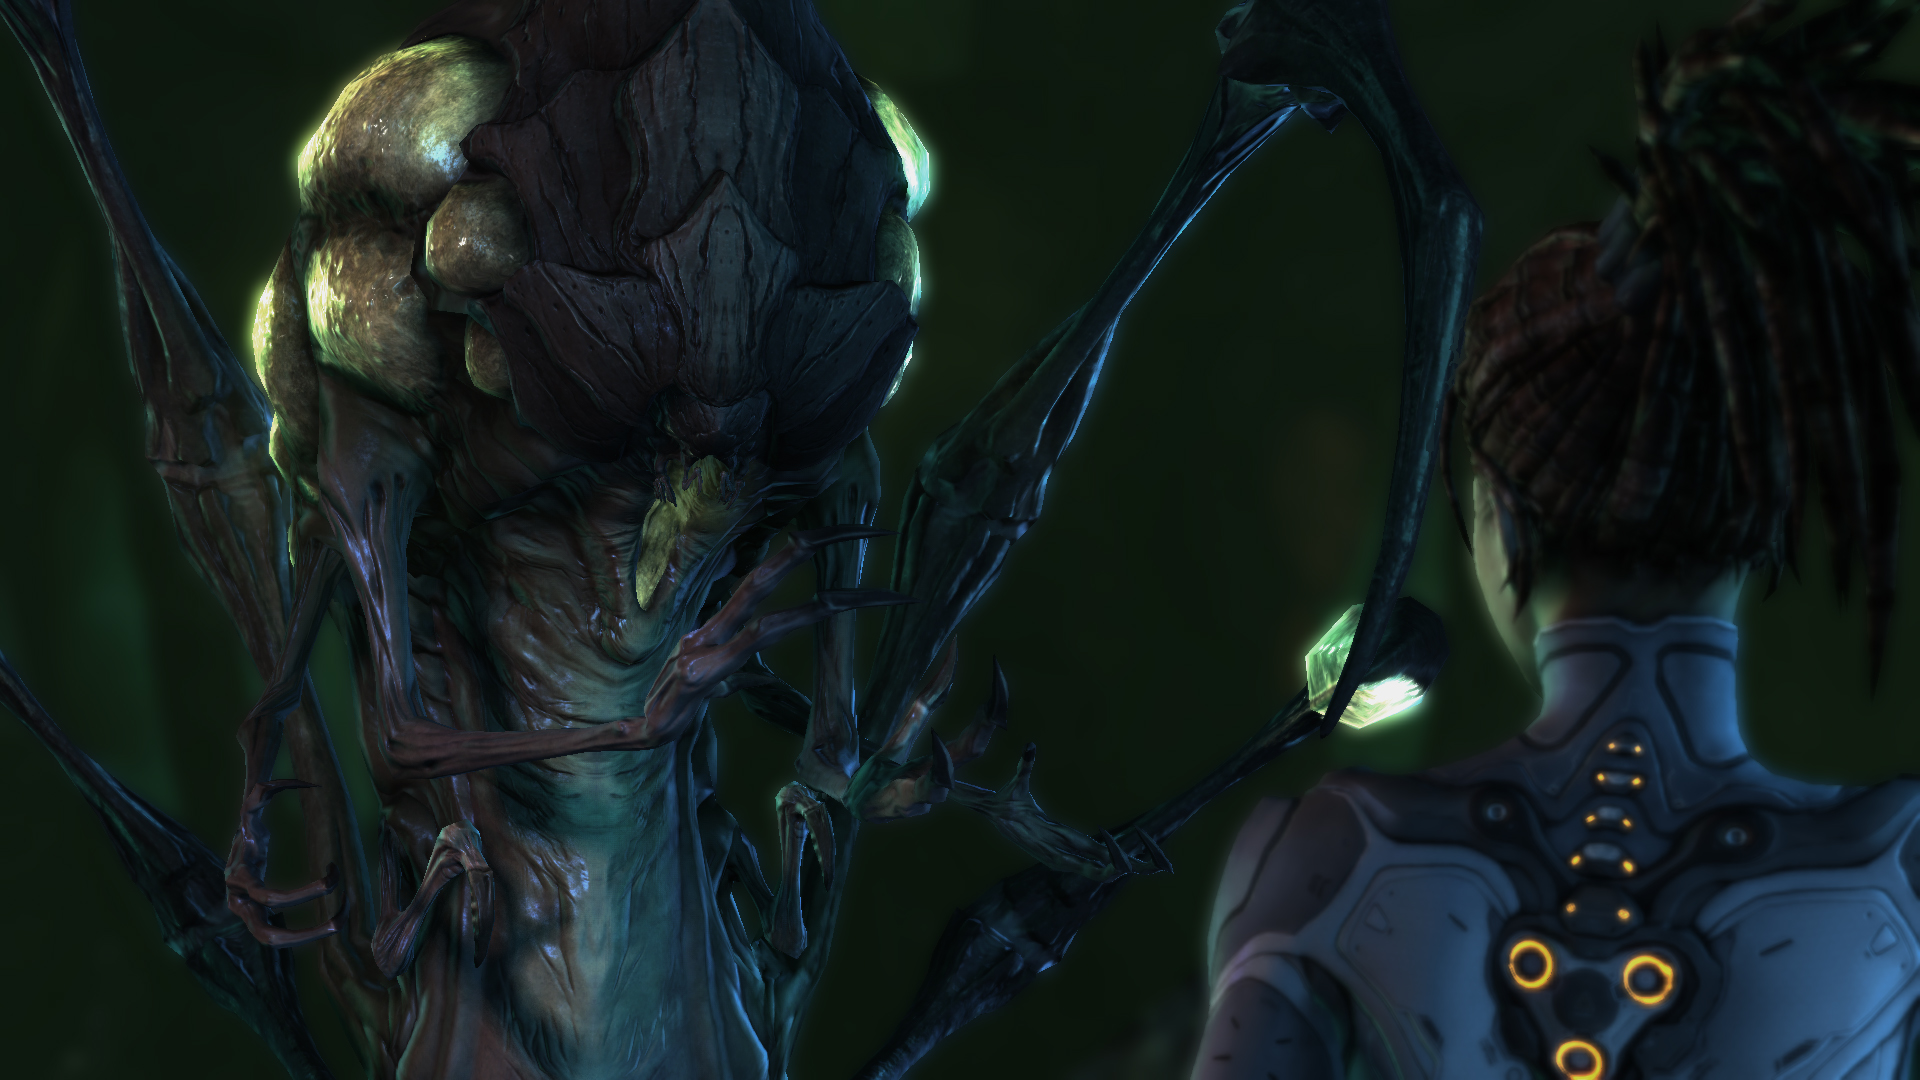 Blizzard suing 10 StarCraft 2 hackers over cheat software